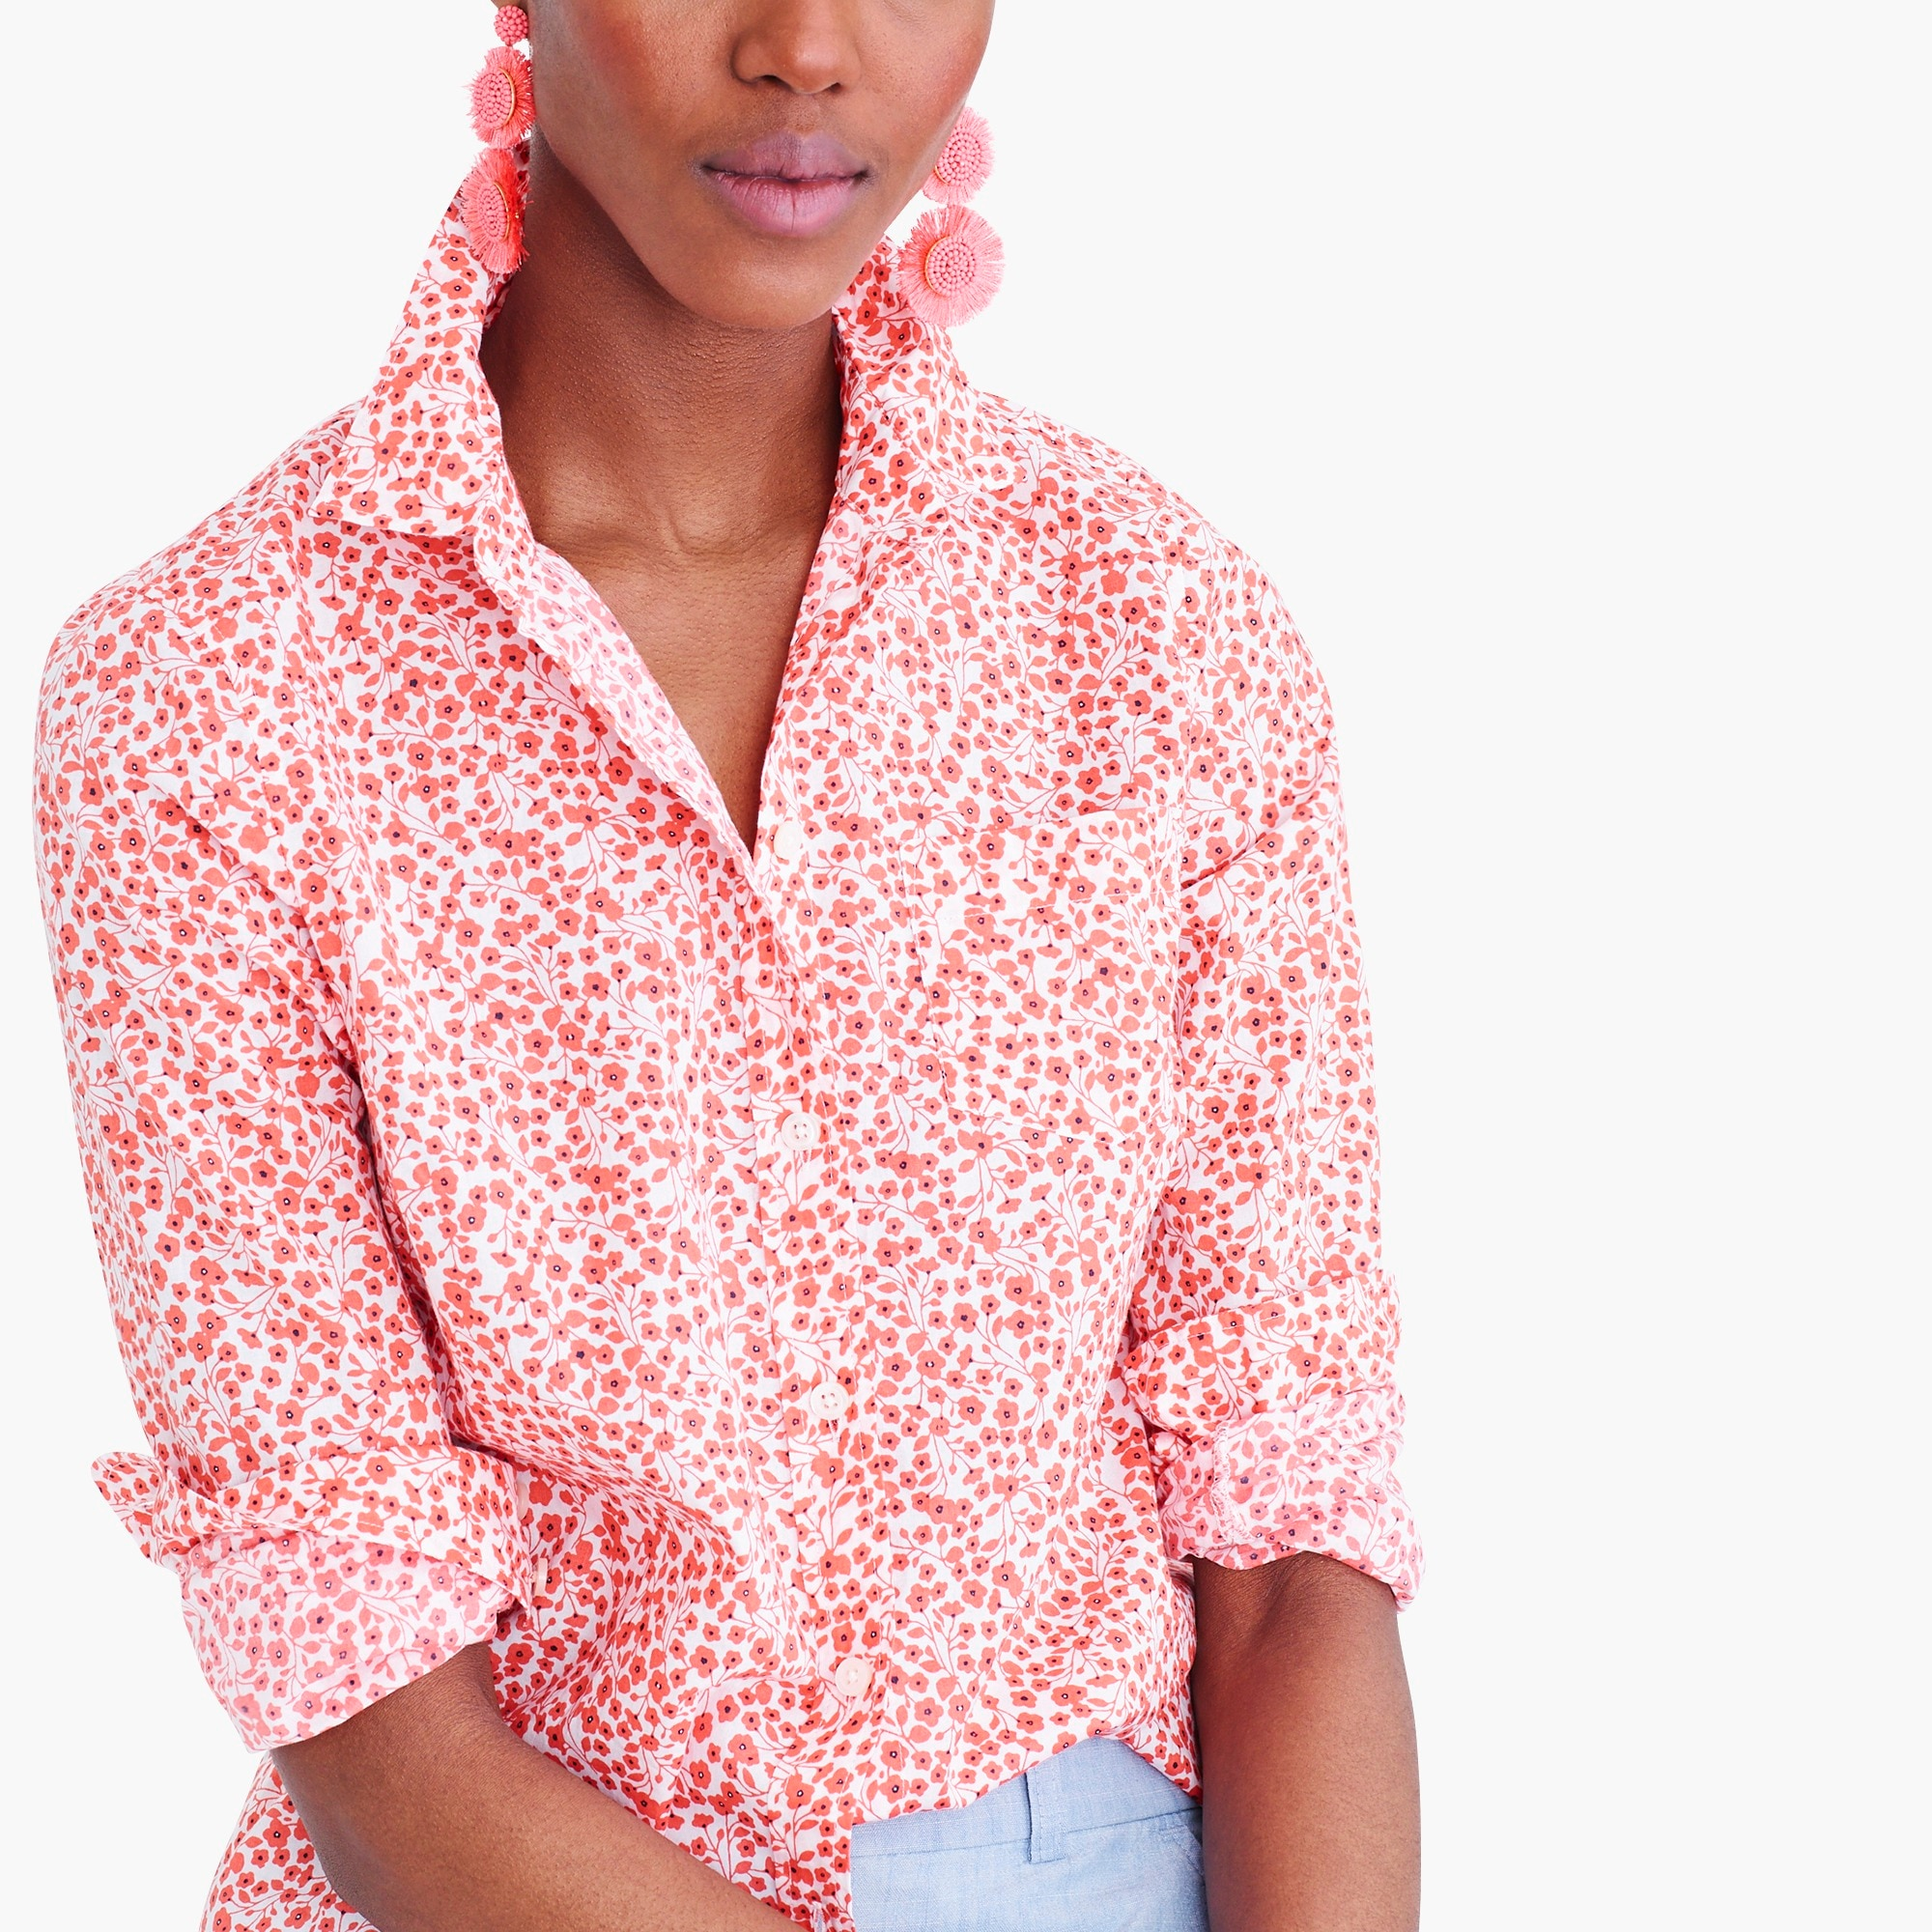 factory womens Button-up shirt